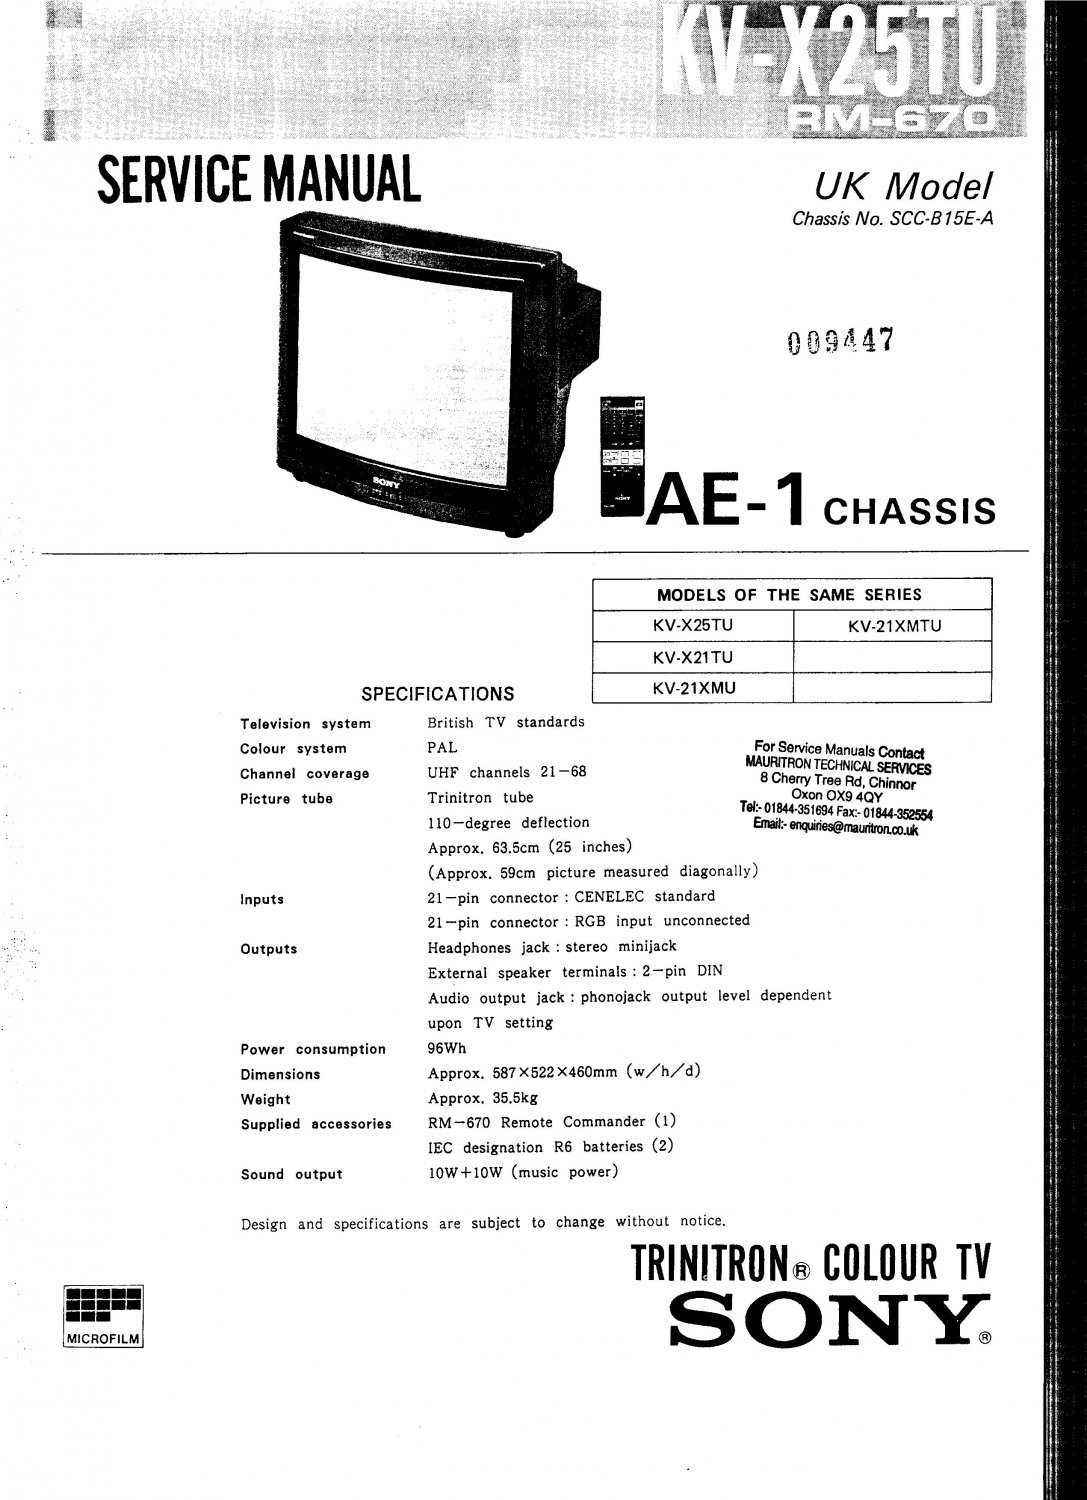 sony ae1 chassis television service manual pdf download rh ecrater com